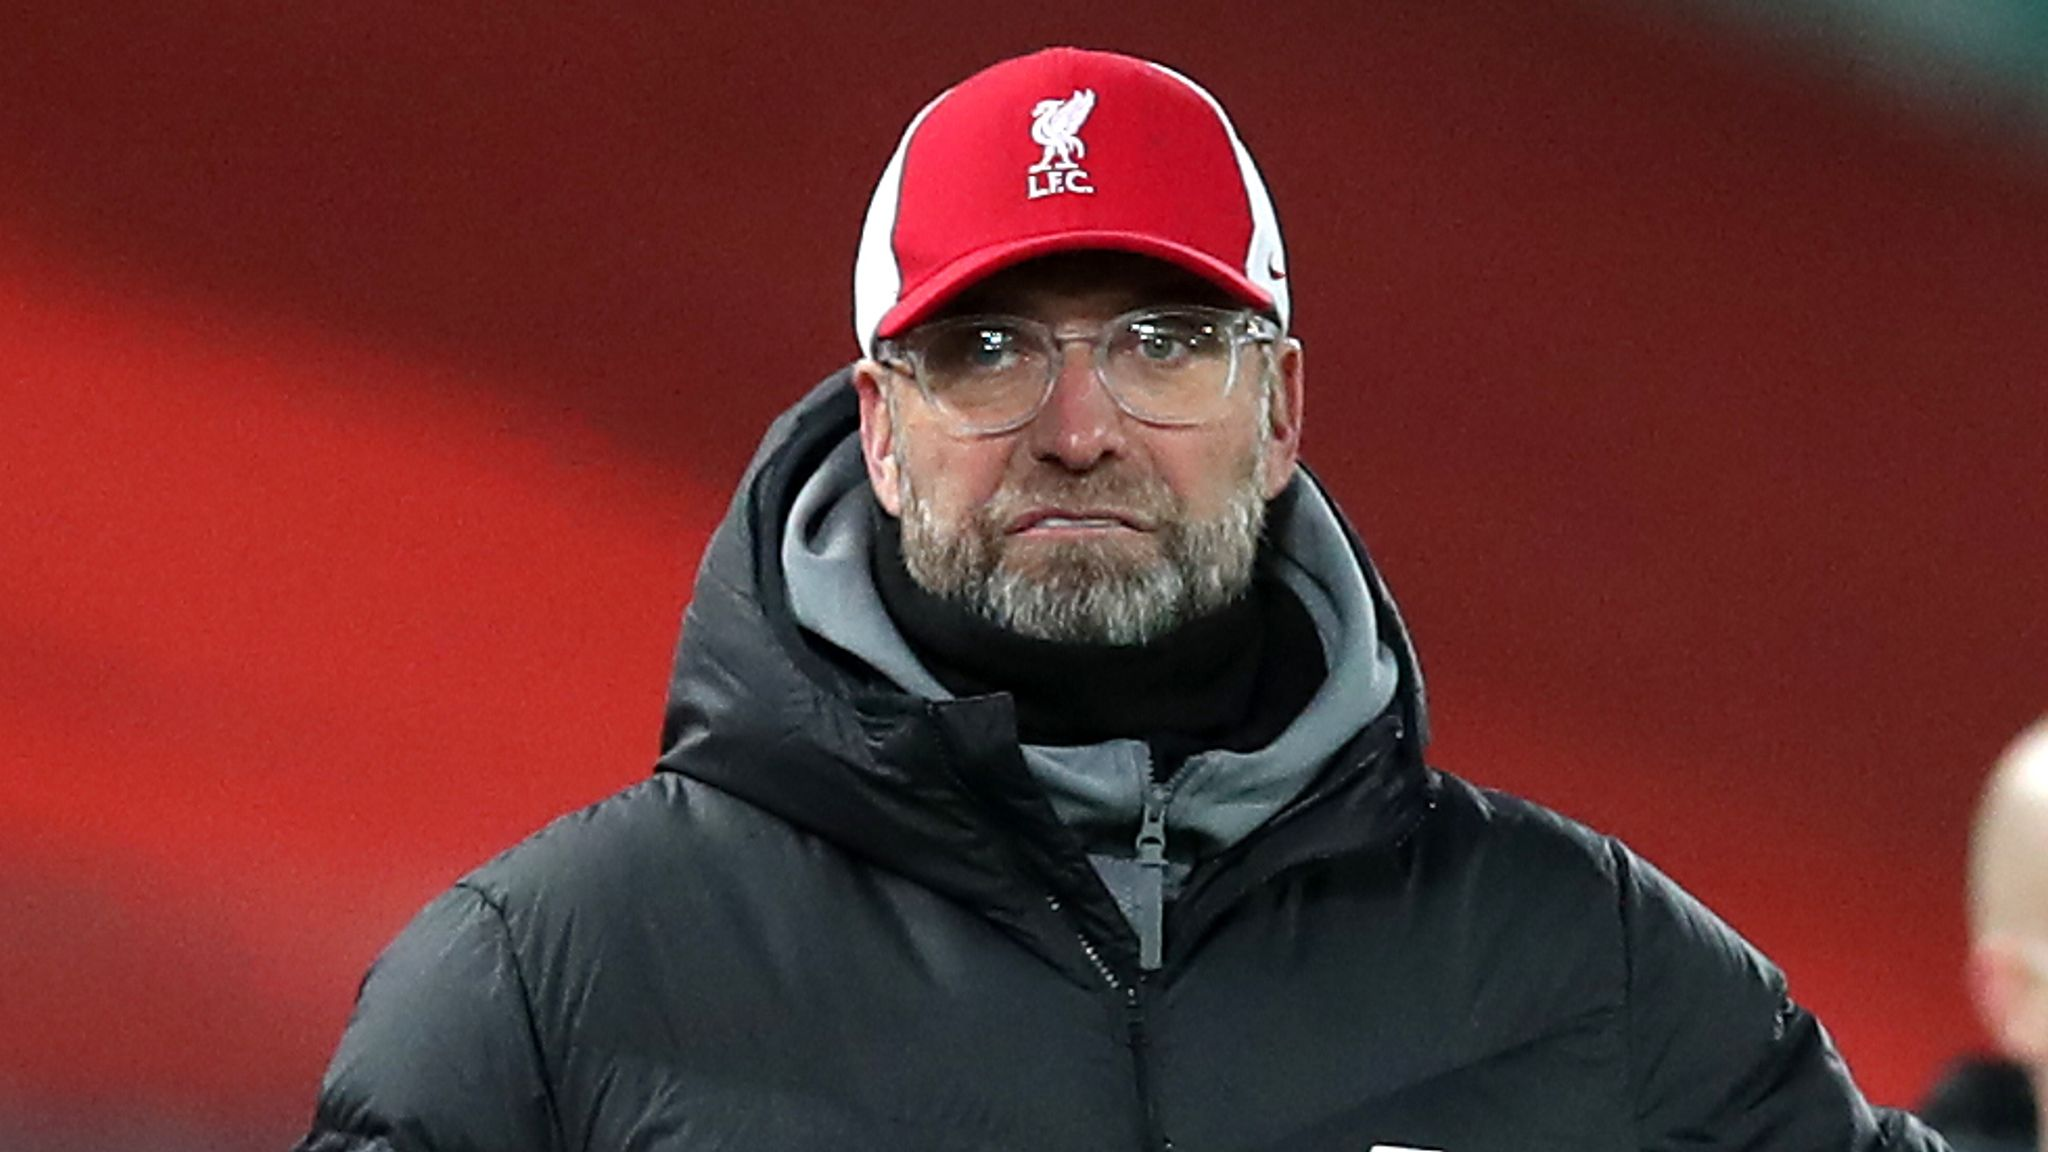 epl-failing-to-qualify-for-champions-league-wont-have-an-effect-on-transfers-klopp.jpg